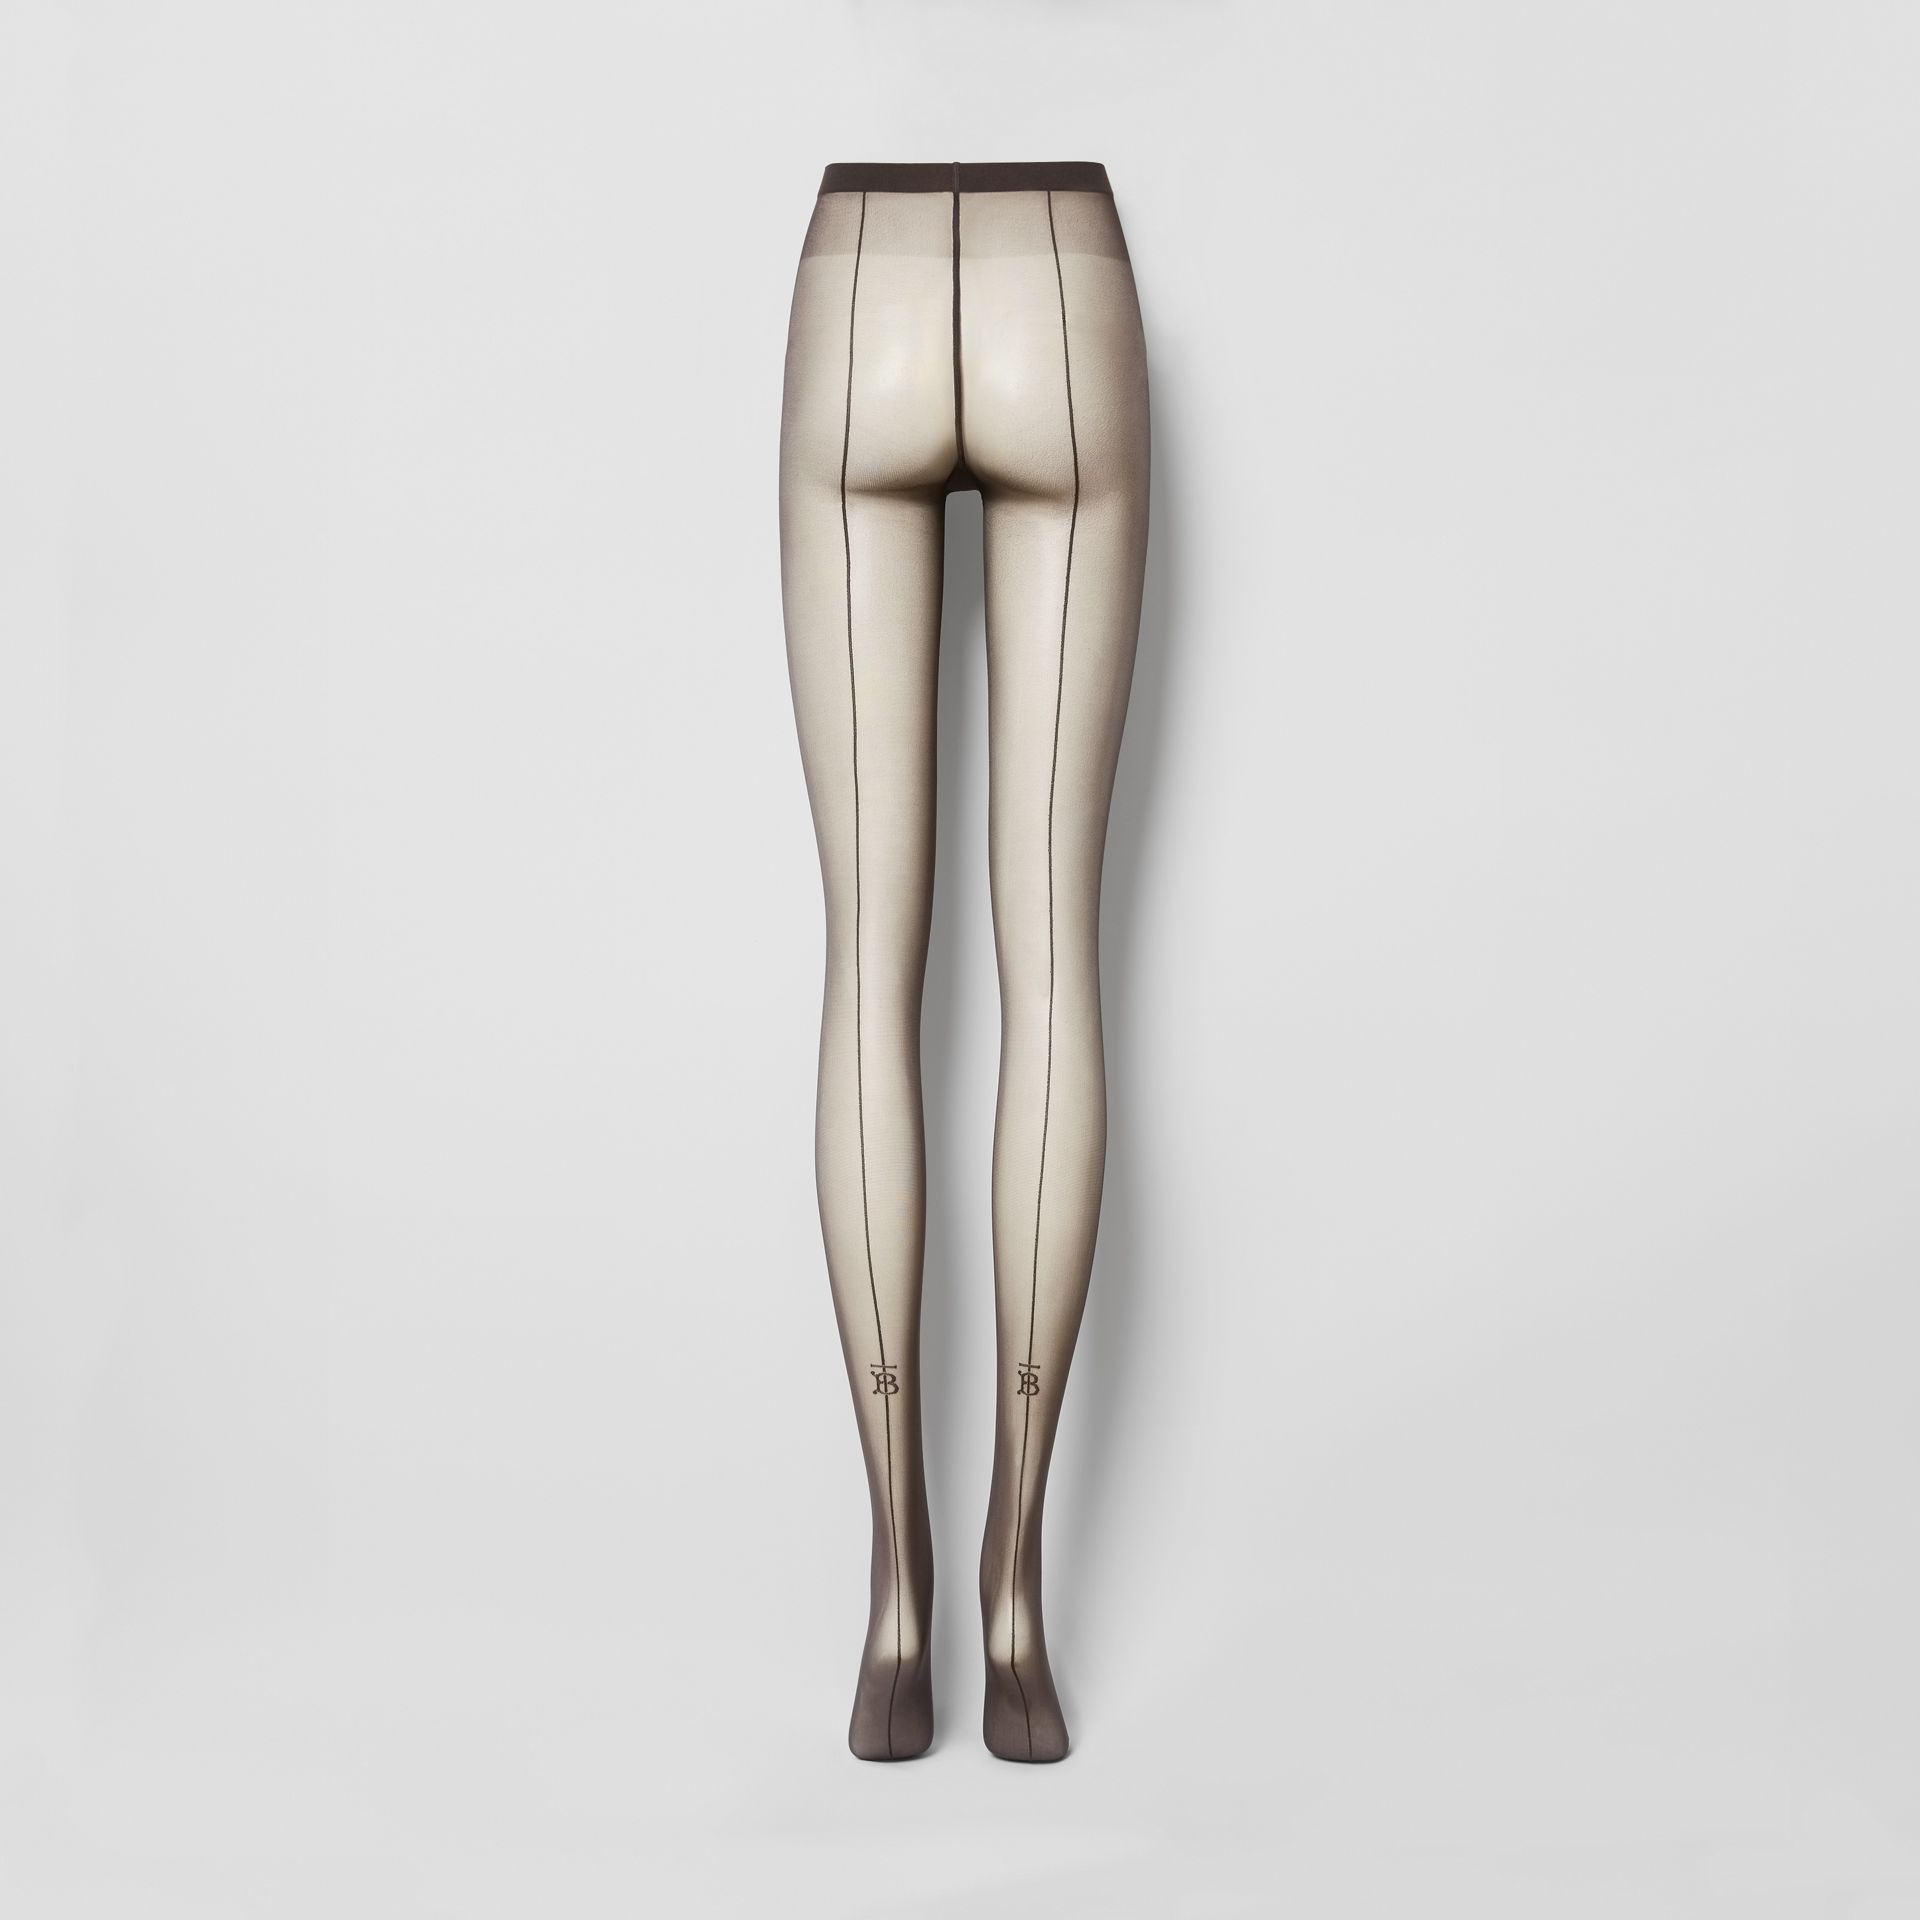 Monogram Motif Seamed Tights in Dark Mocha - Women | Burberry - gallery image 3